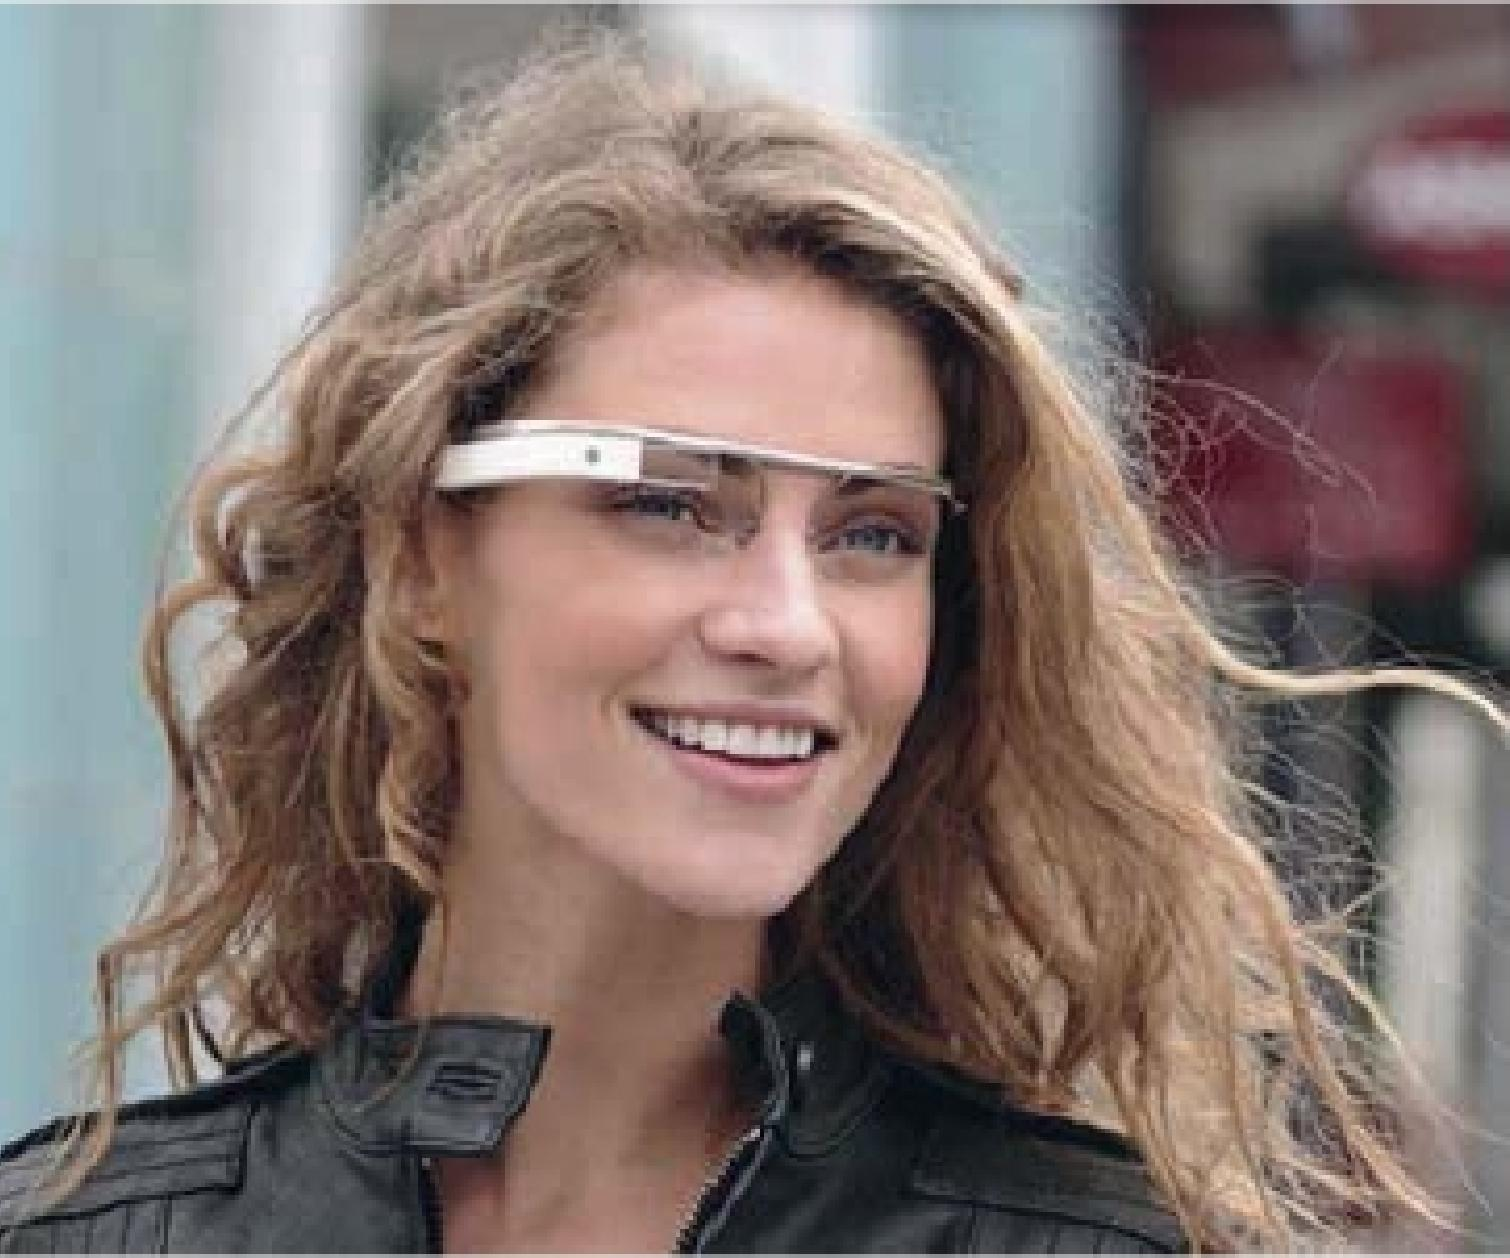 http://pc-urgence.com/actus/wp-content/uploads/2013/google-glass/googleglass_Picture3.jpg